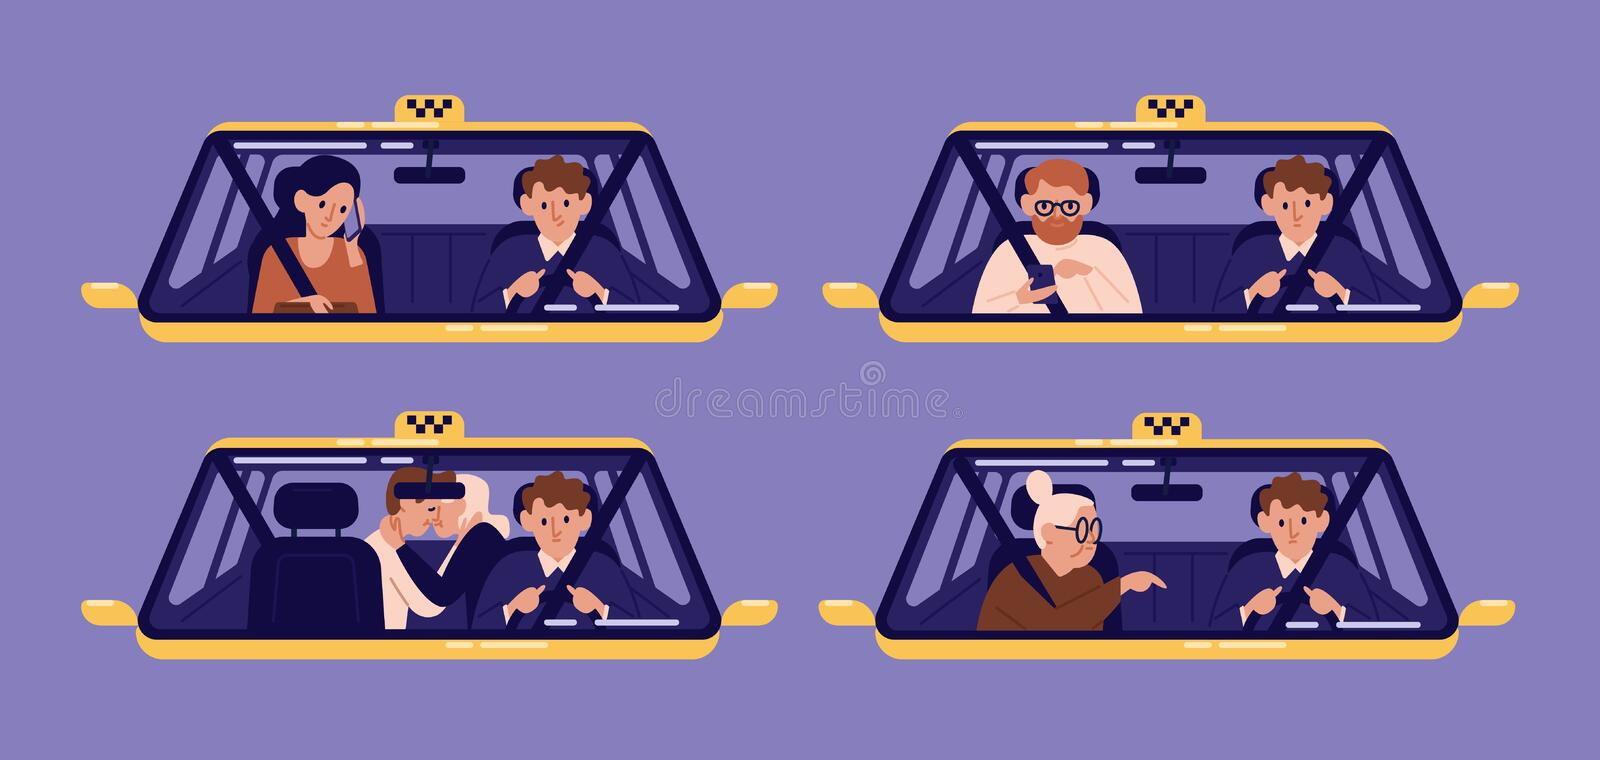 Collection of taxi customers or clients and driver in cab seen through windshield. Bundle of people using automobile stock illustration